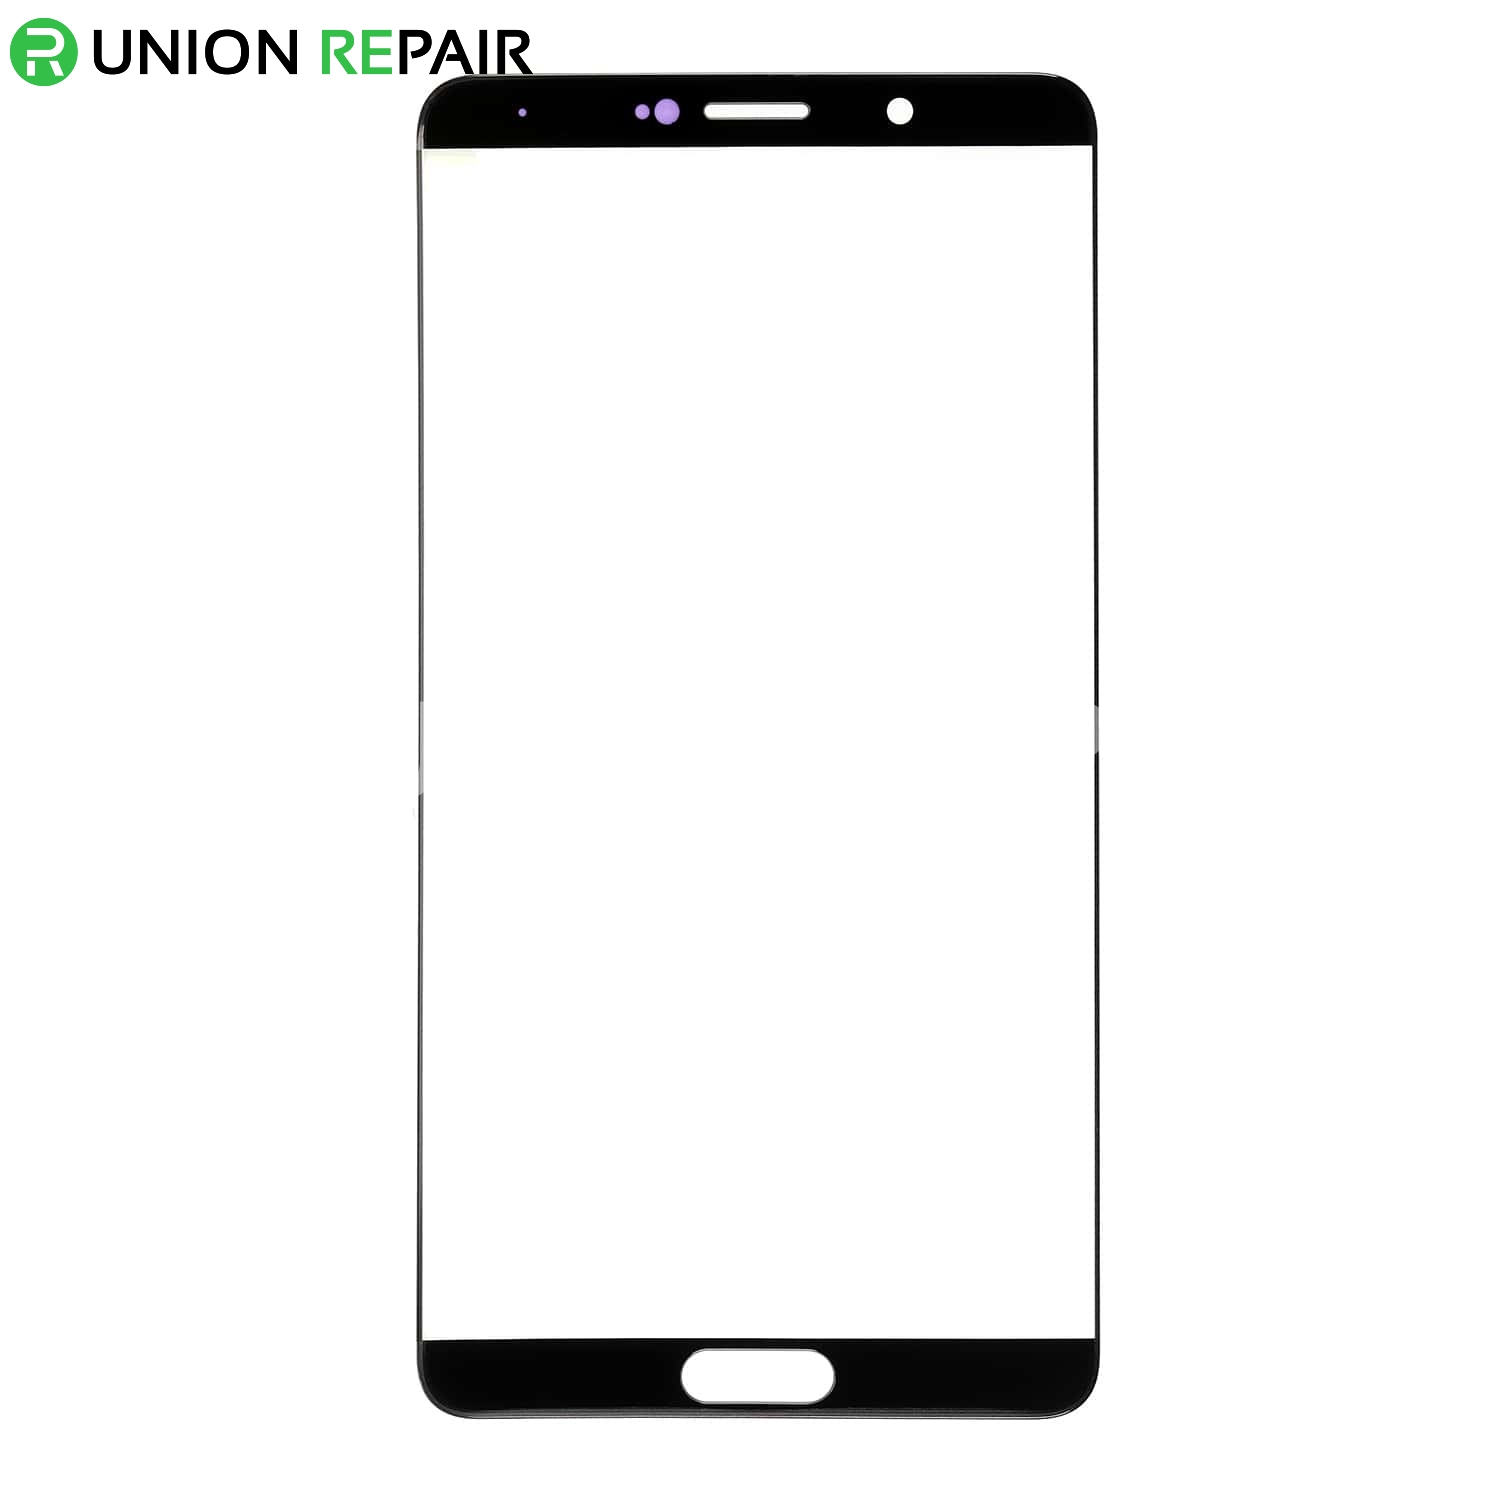 Replacement for Huawei Mate 10 Front Glass - Black, fig. 1